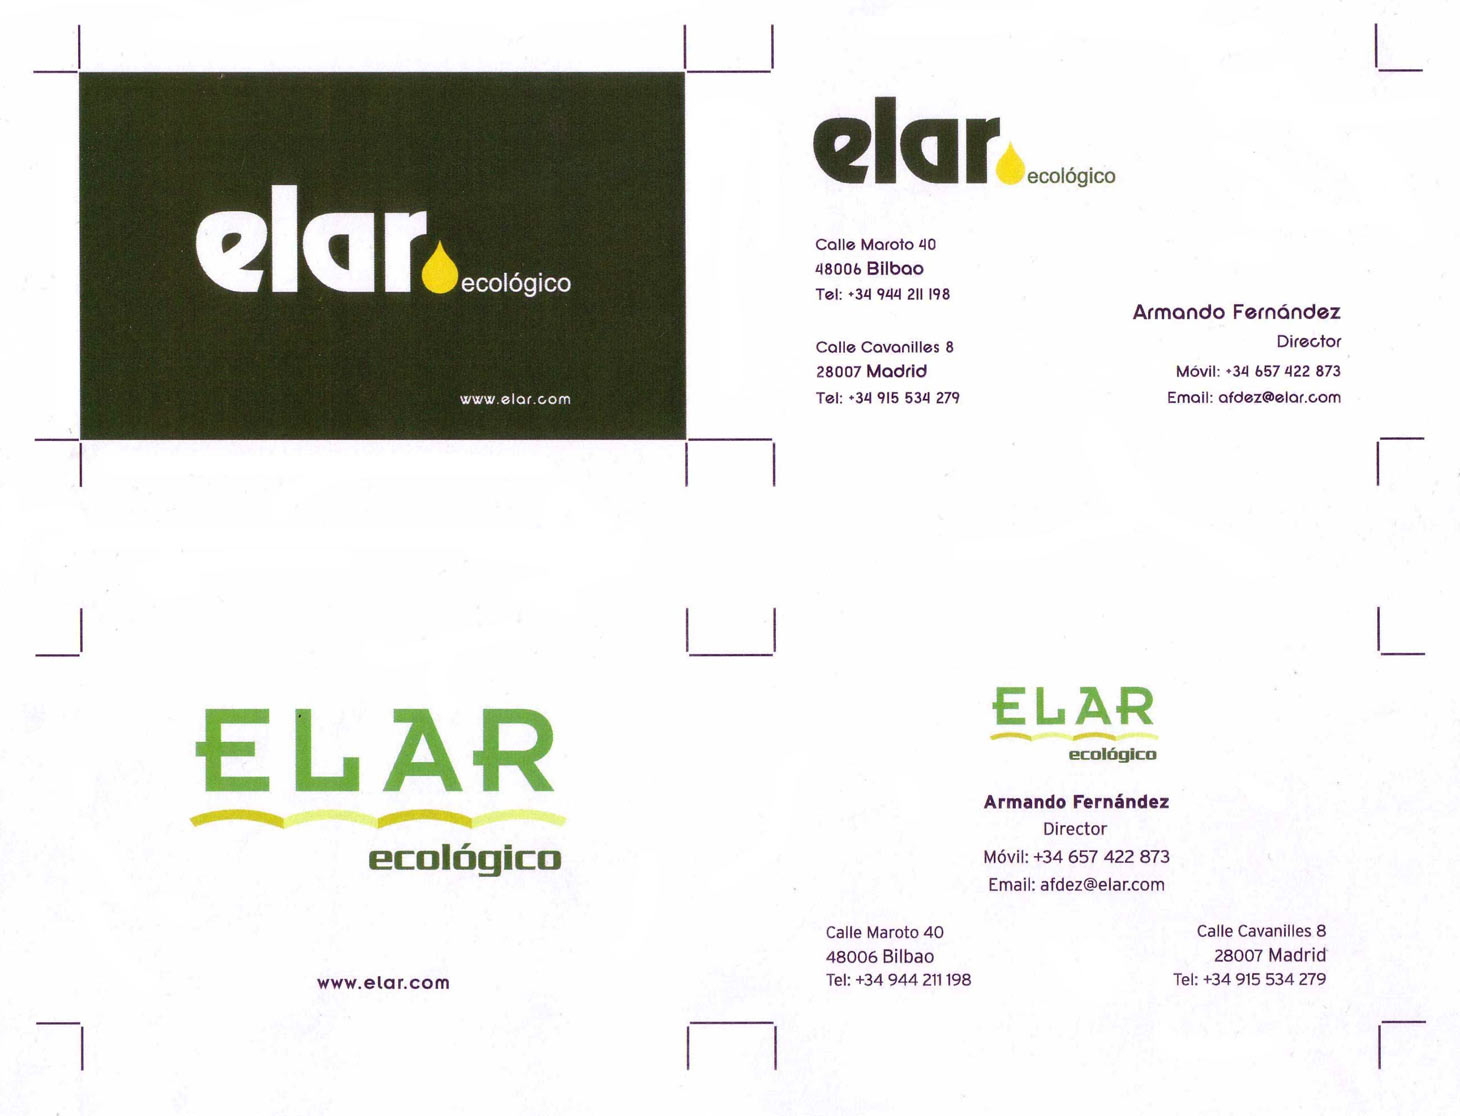 Emilio Pla Escudero business cards